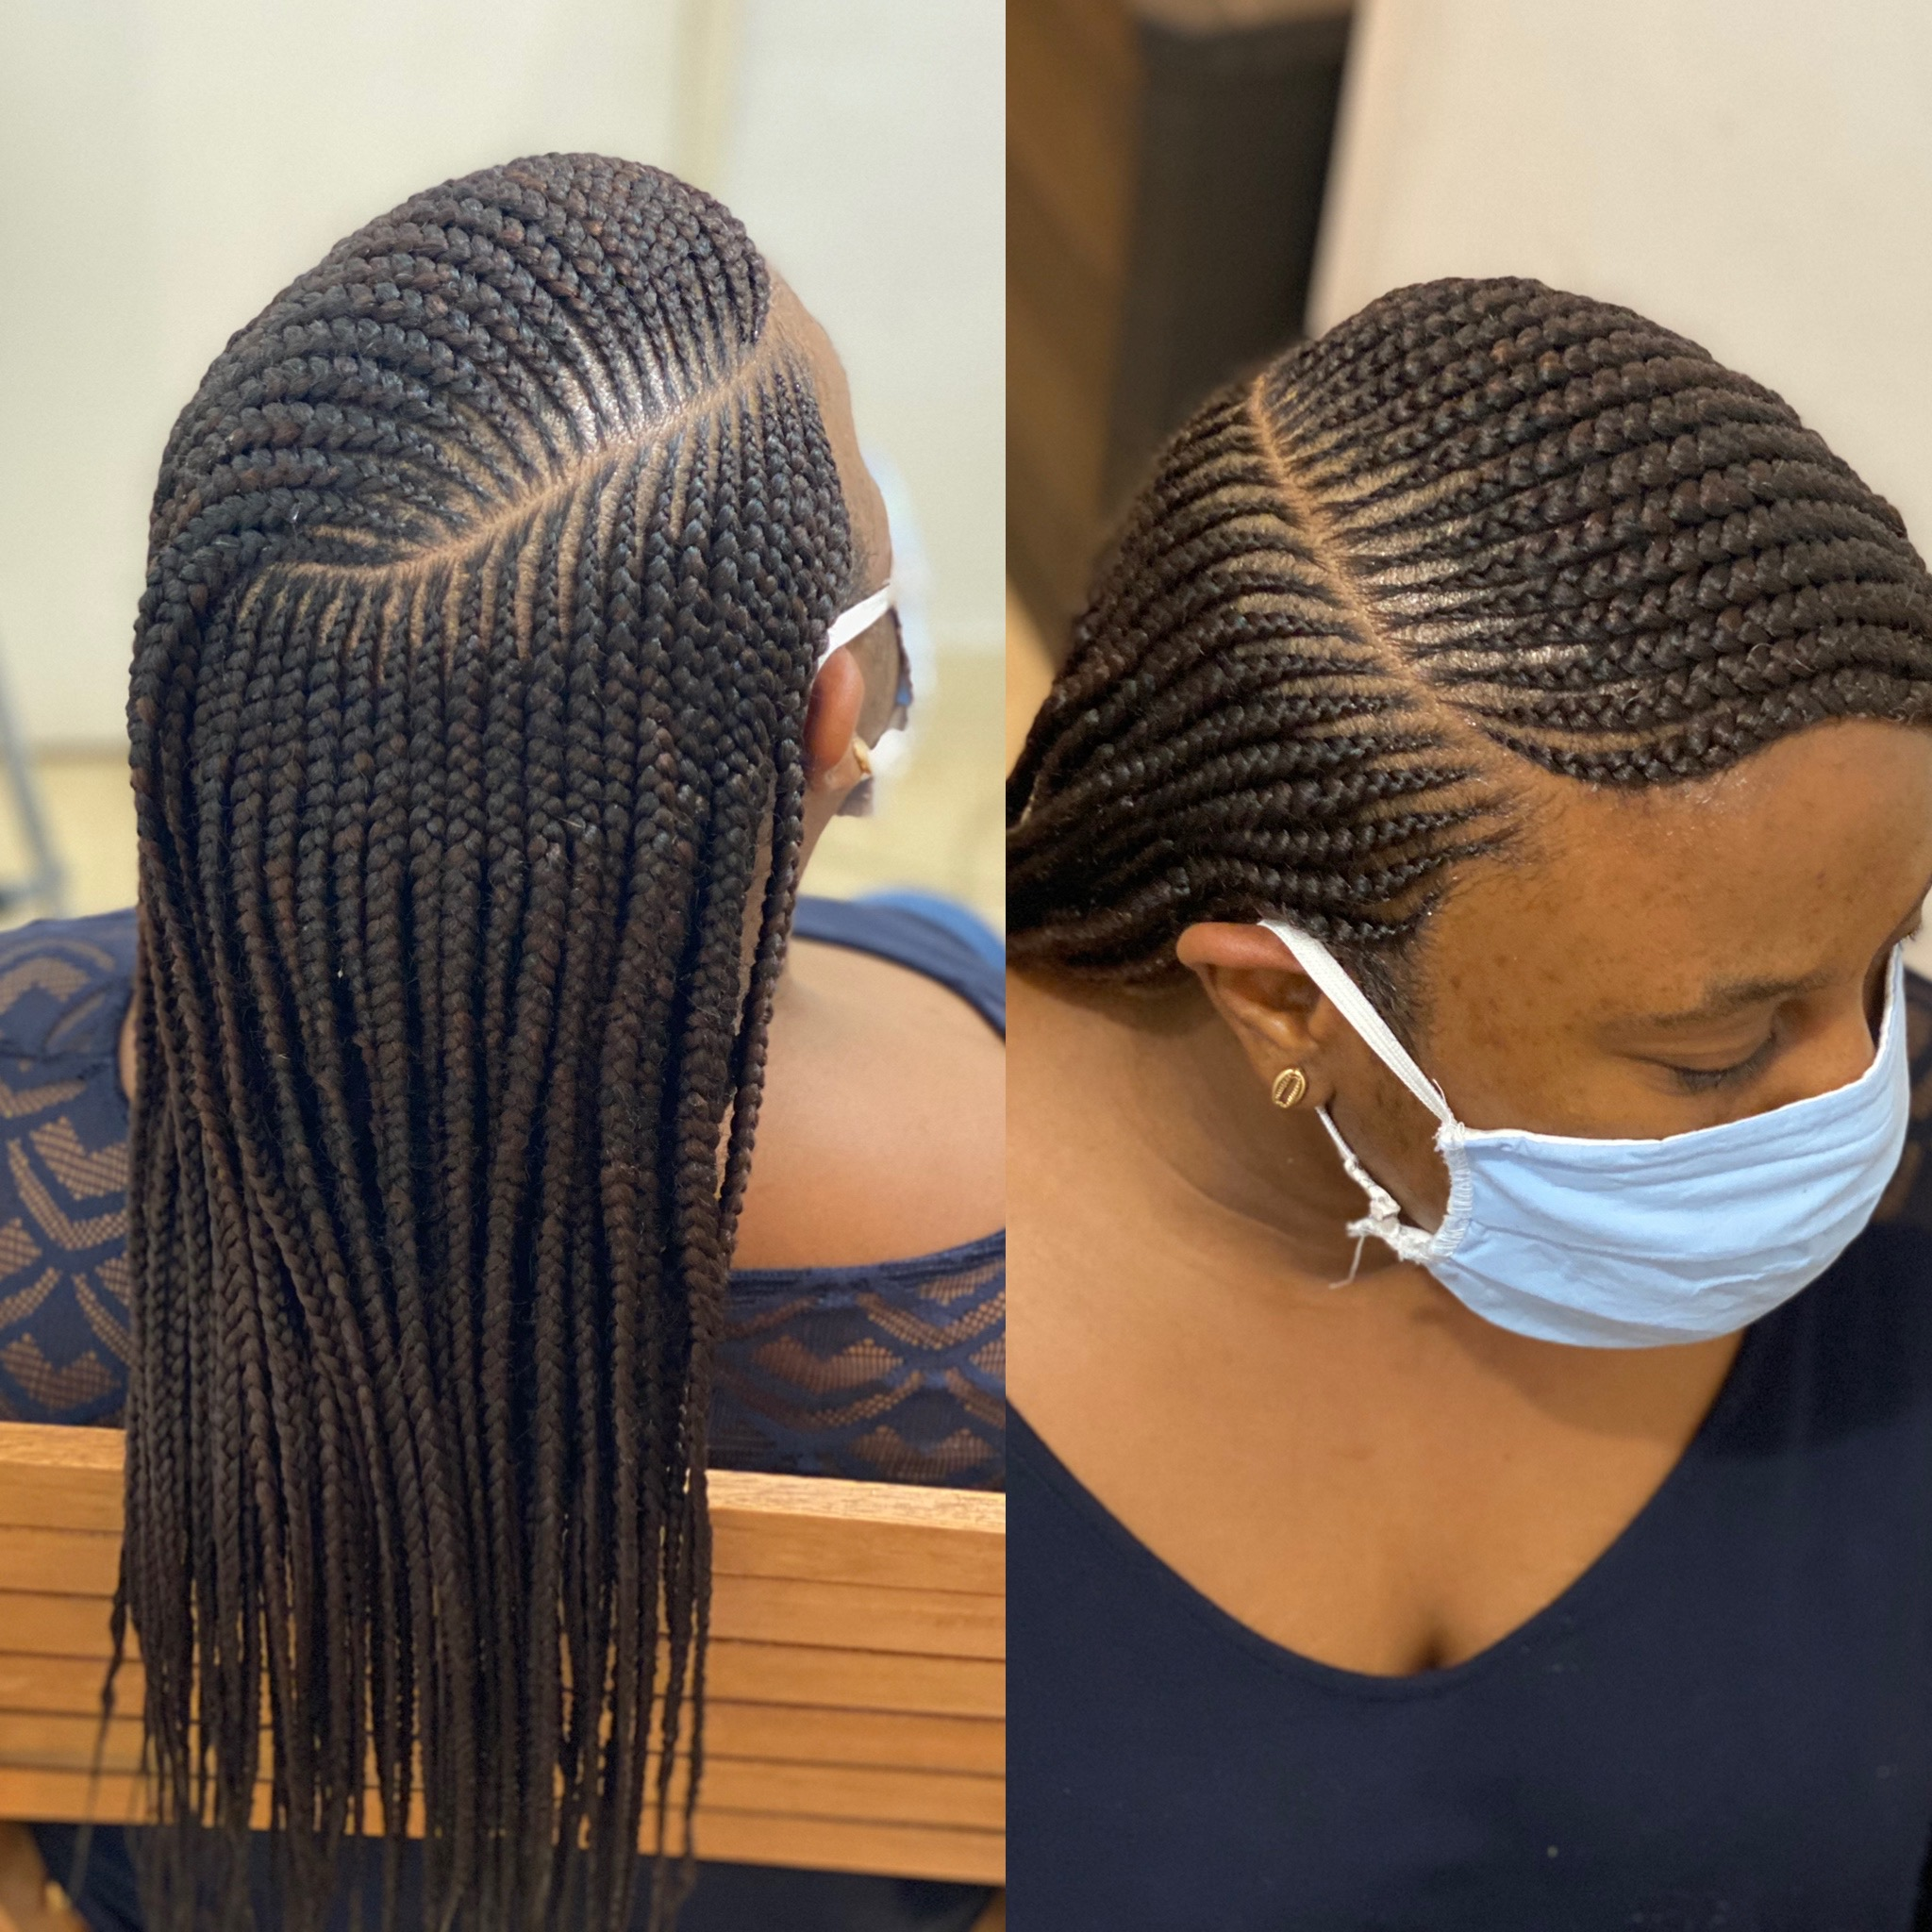 salon de coiffure afro tresse tresses box braids crochet braids vanilles tissages paris 75 77 78 91 92 93 94 95 BLCSWKBQ